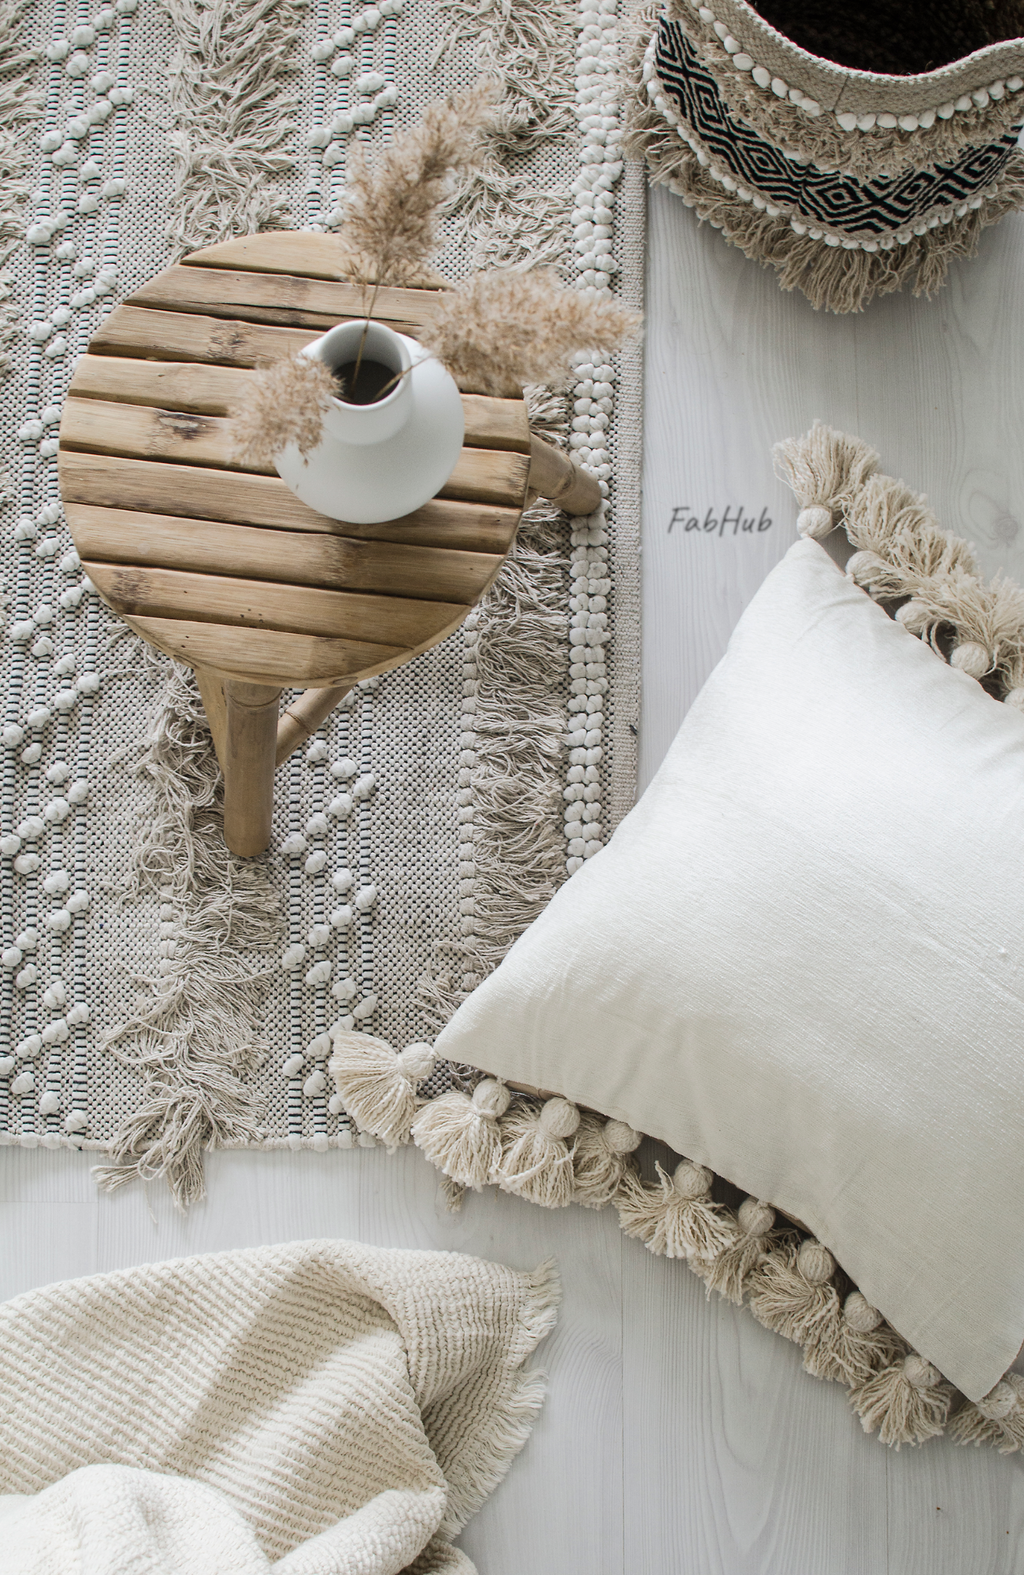 Pompon Pillow Cover Faye - Home Decor | Shop Baskets, Ceramics, Pillows, Rugs & Wall Hangs online